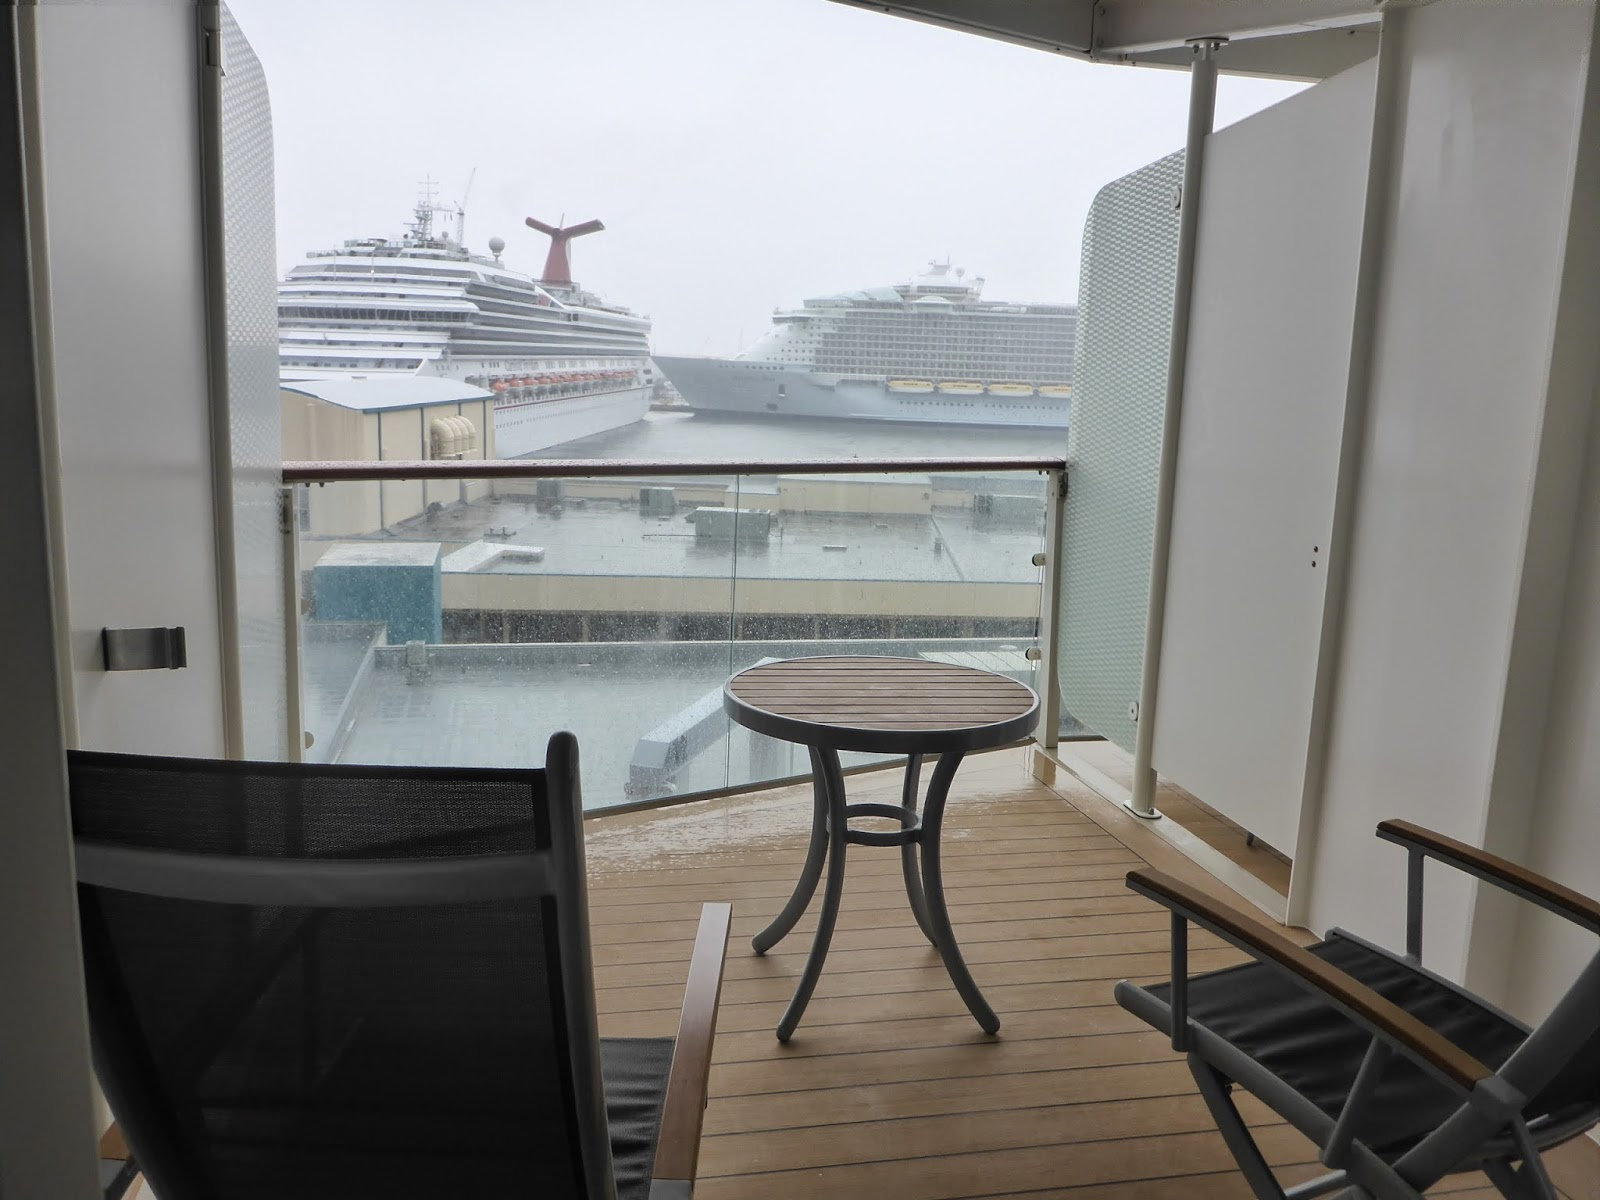 Goldring travel 39 s making waves candid cruise travel for Cruise balcony pictures